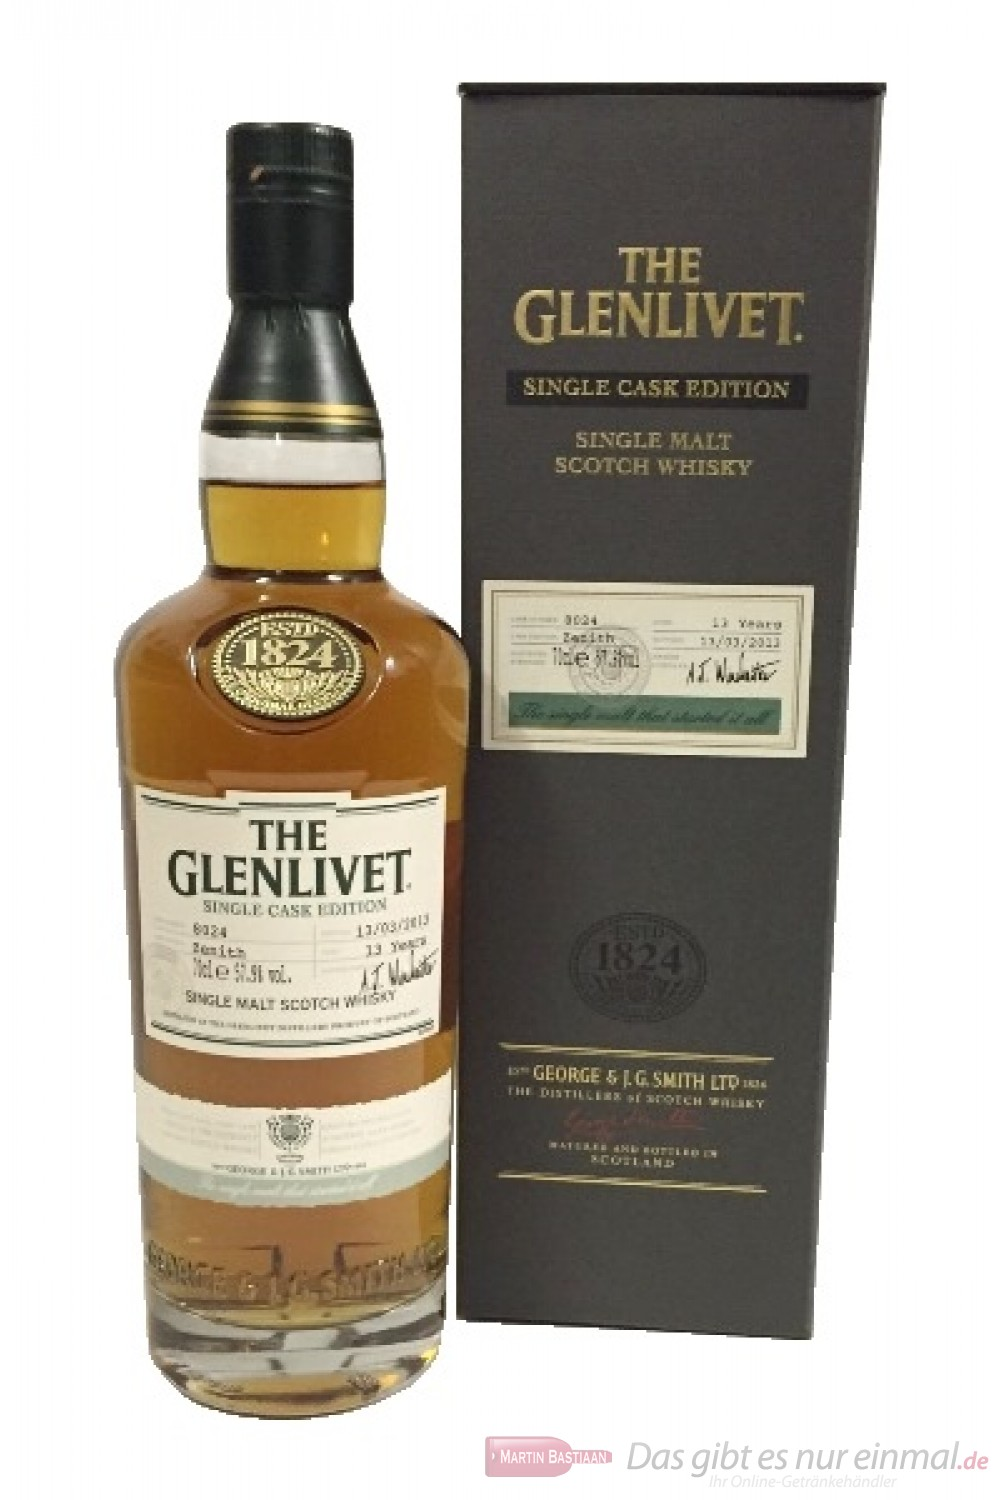 The Glenlivet Single Cask Zenith